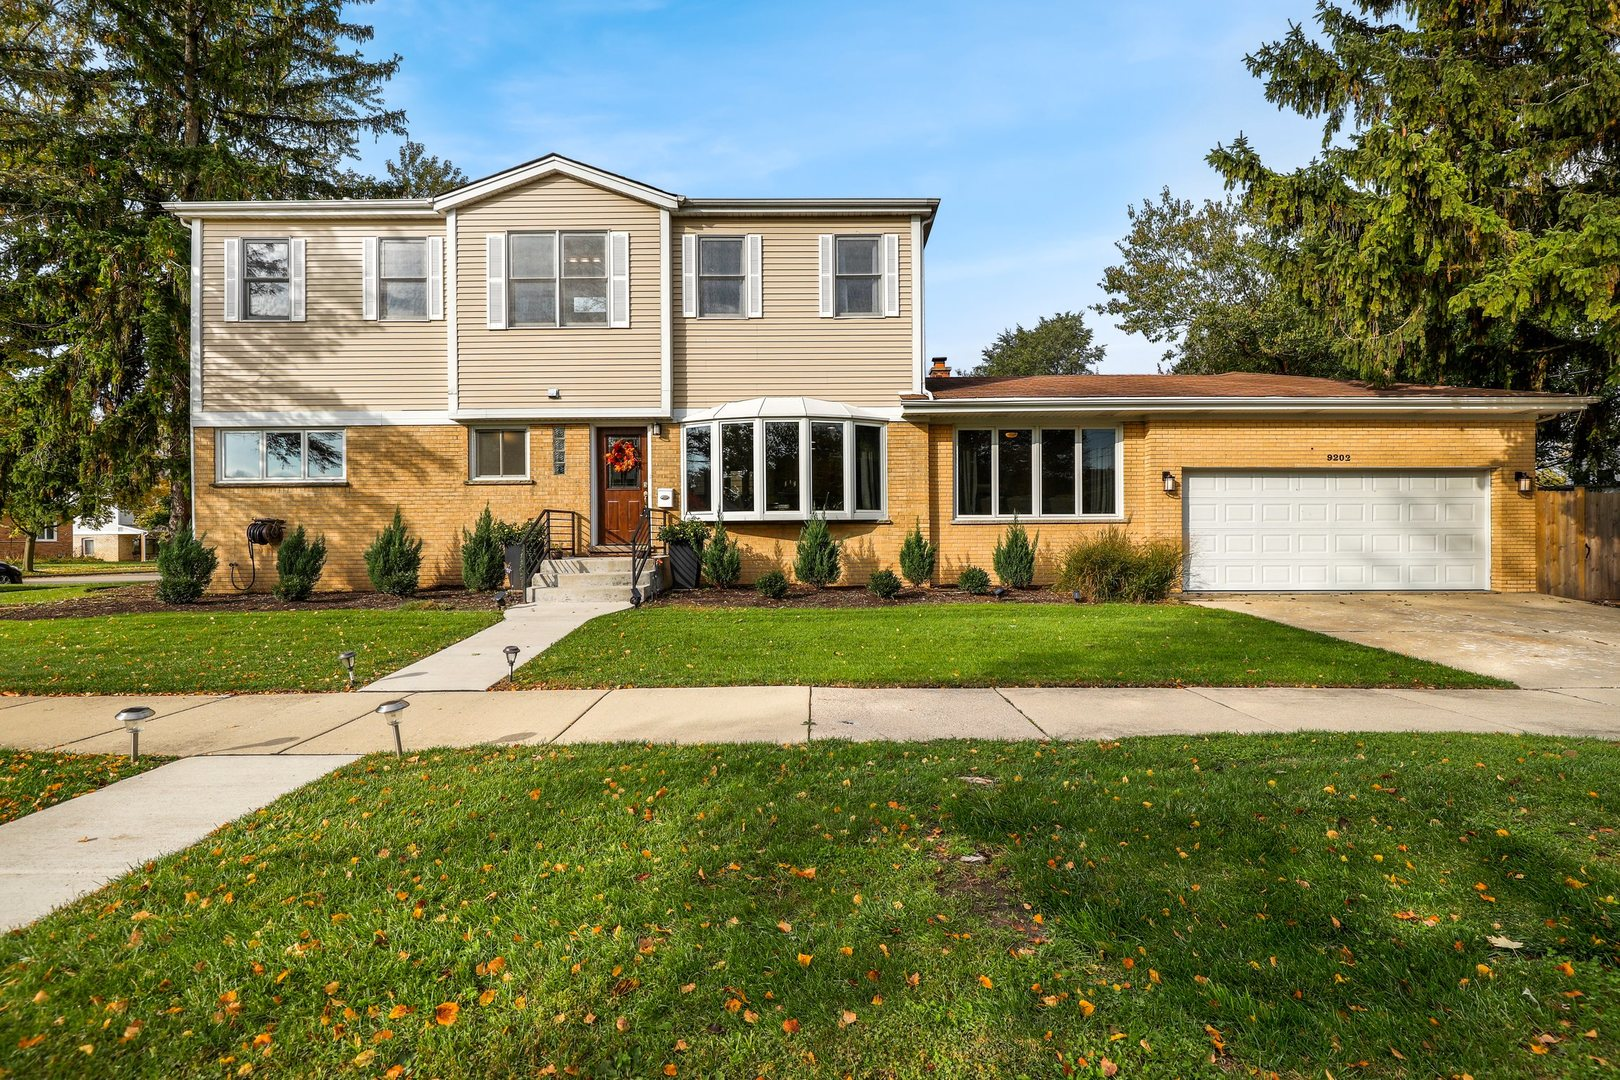 9202 Major Avenue, one of homes for sale in Morton Grove